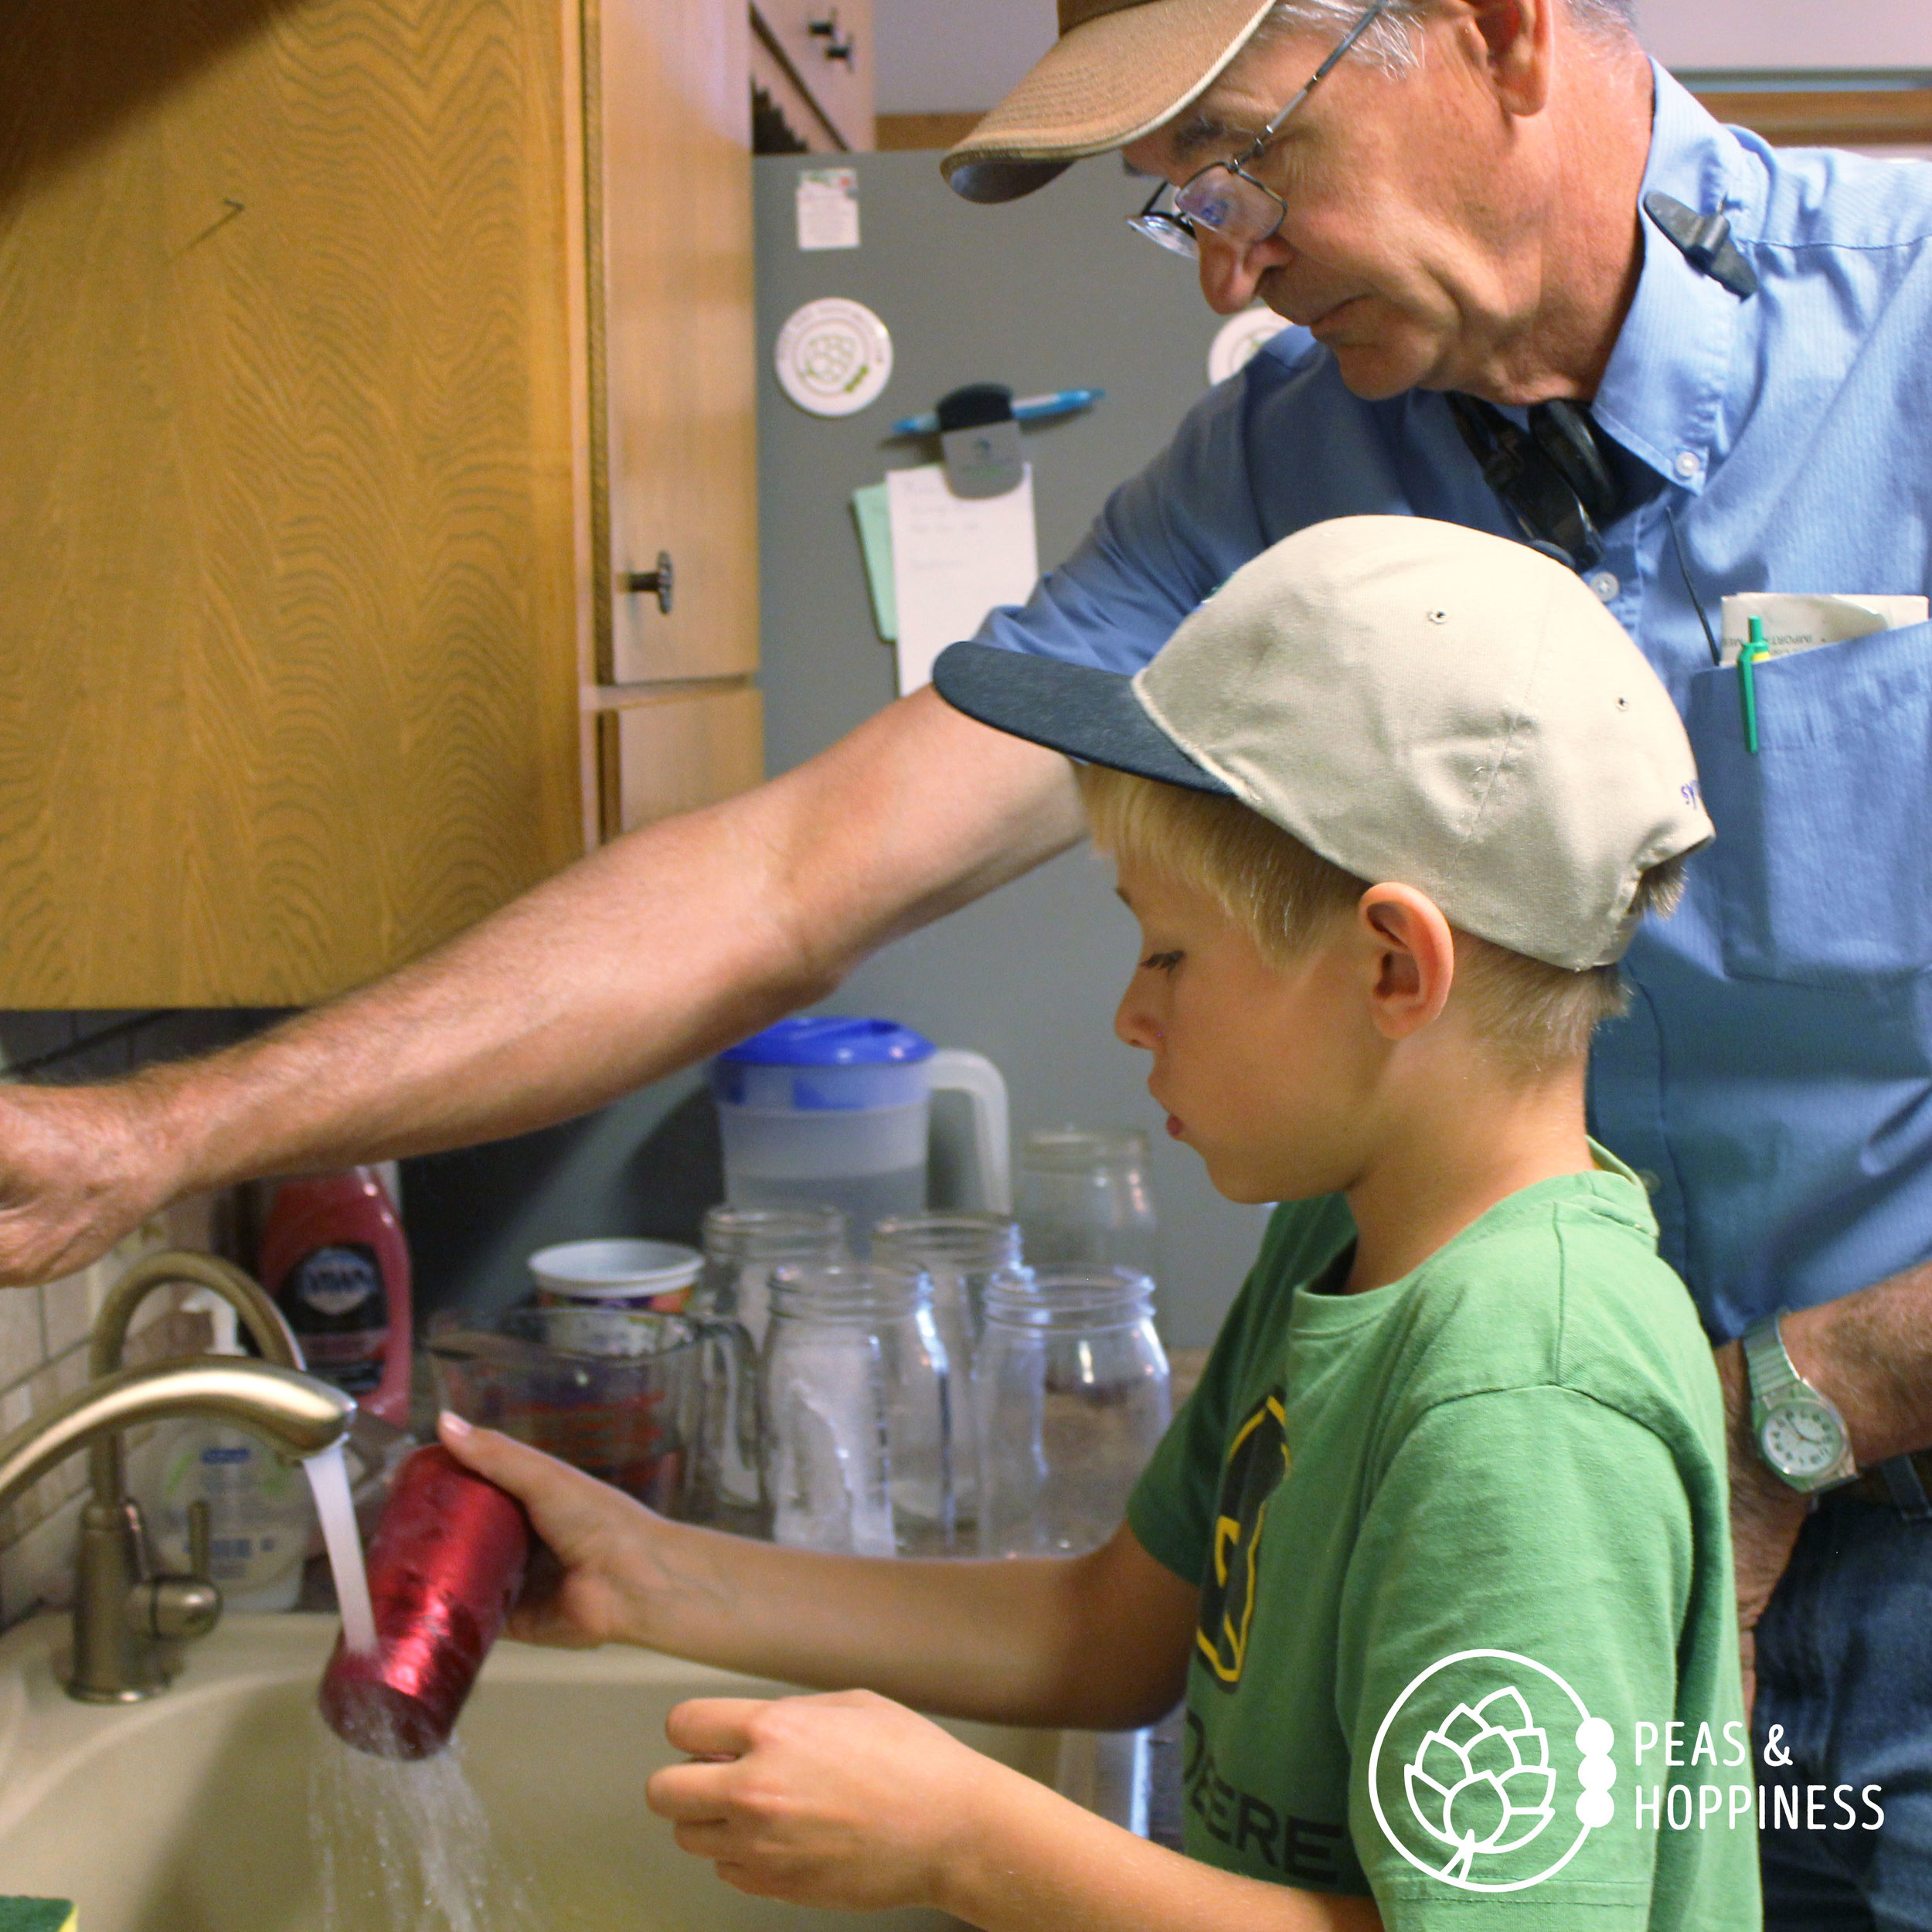 Dad helps make lunches now, too